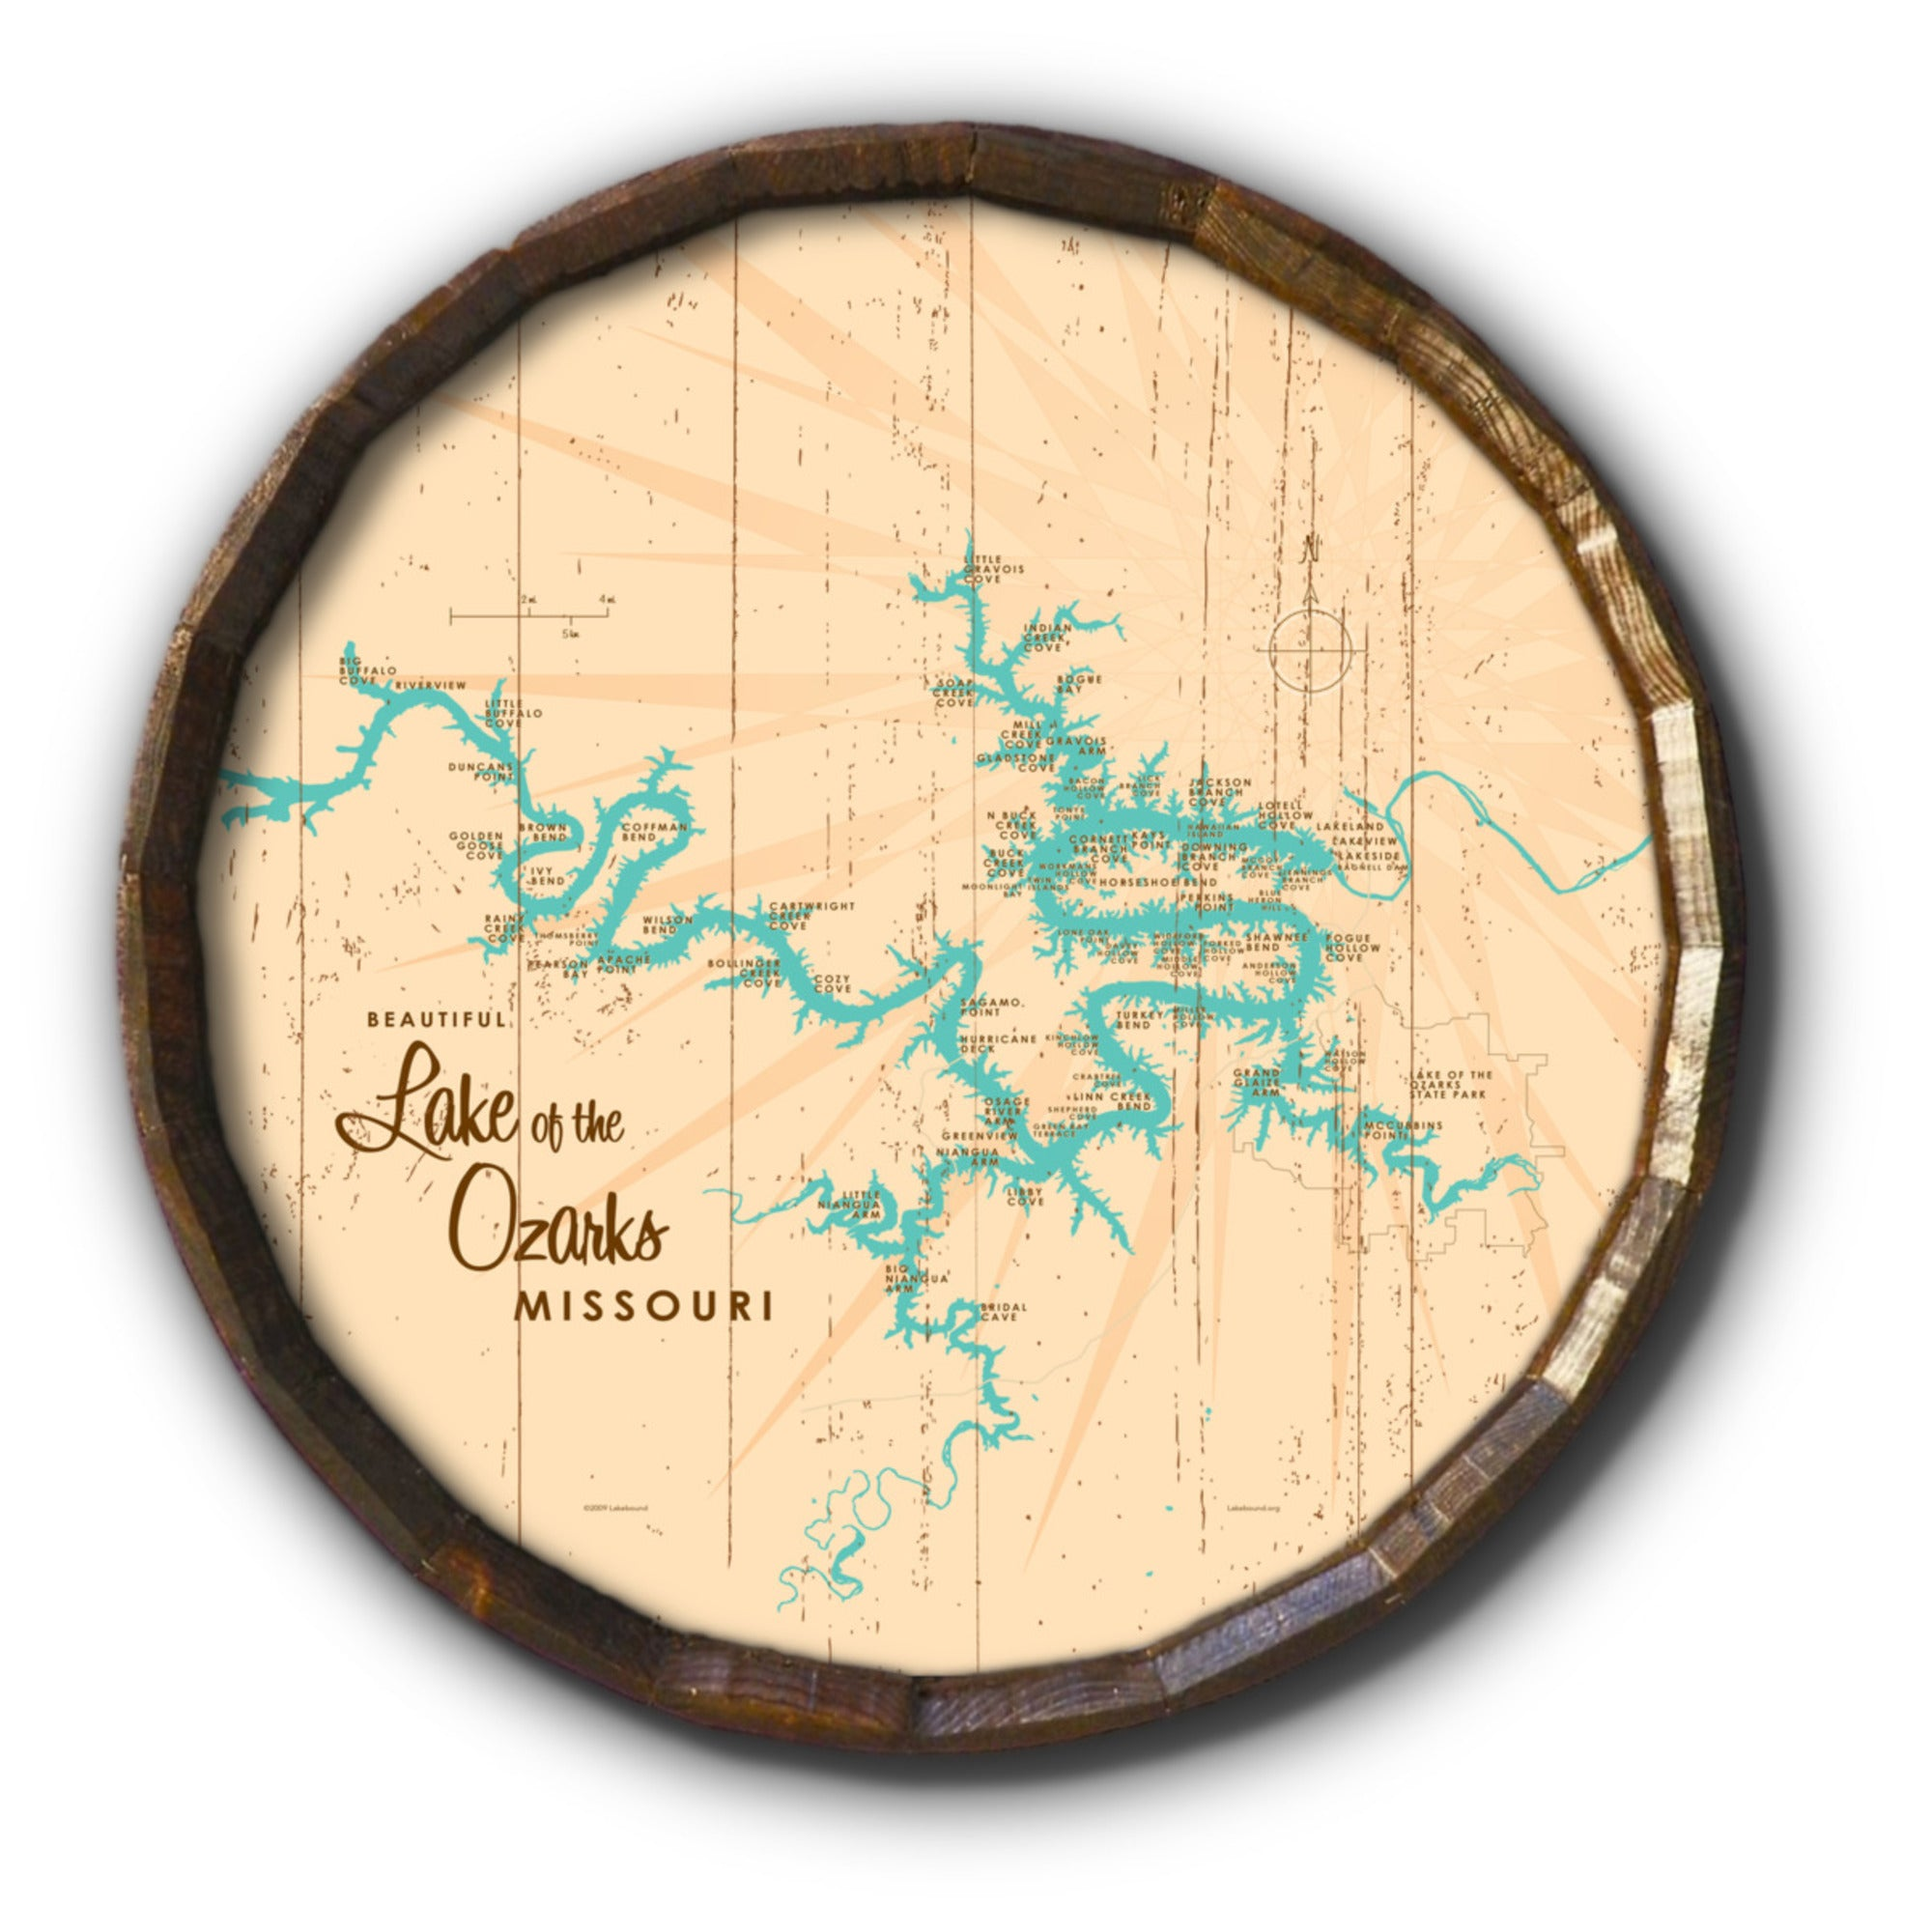 Lake of the Ozarks Missouri (without Mile Markers), Rustic Barrel End Map Art